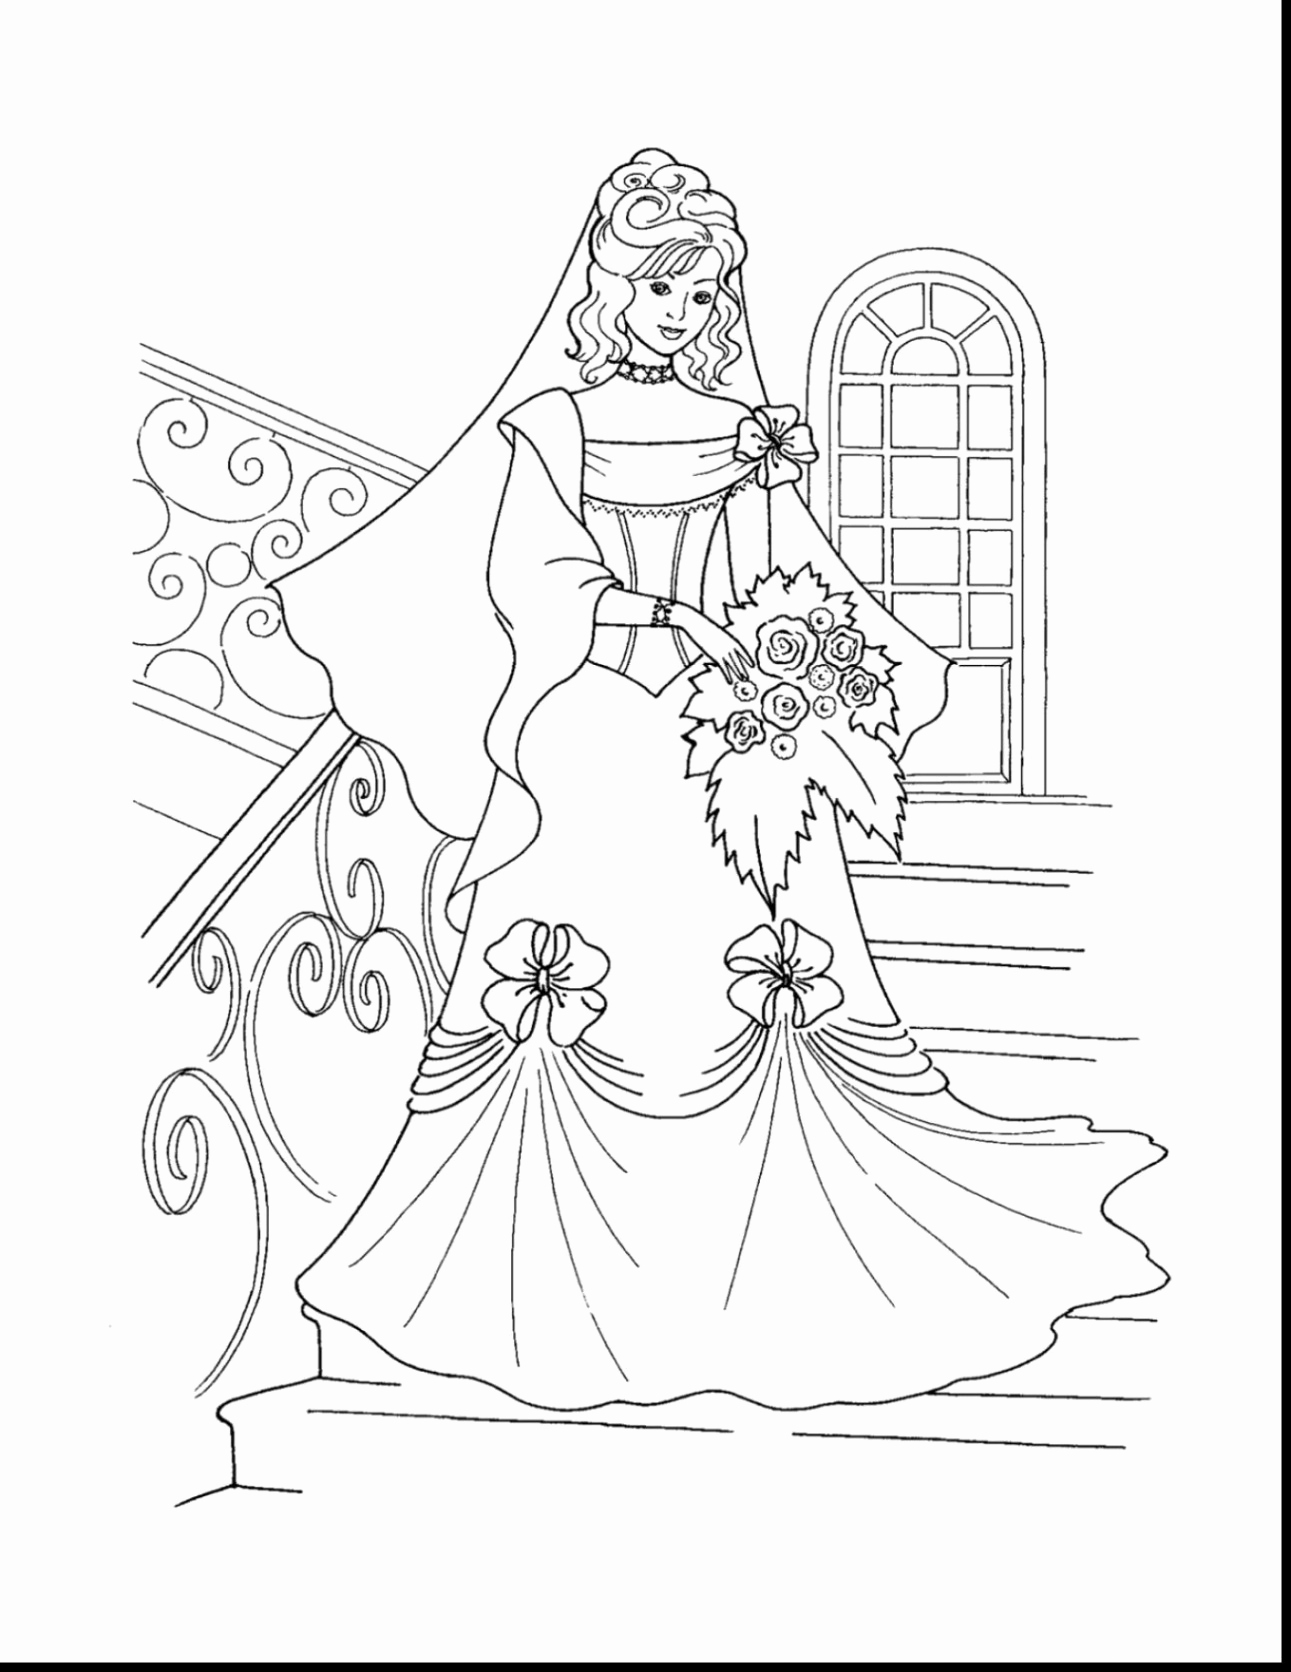 Barbie Deutsch Ganzer Film Genial Barbie Merliah Coloring Pages Girls Coloring Pages Barbie Mermaid